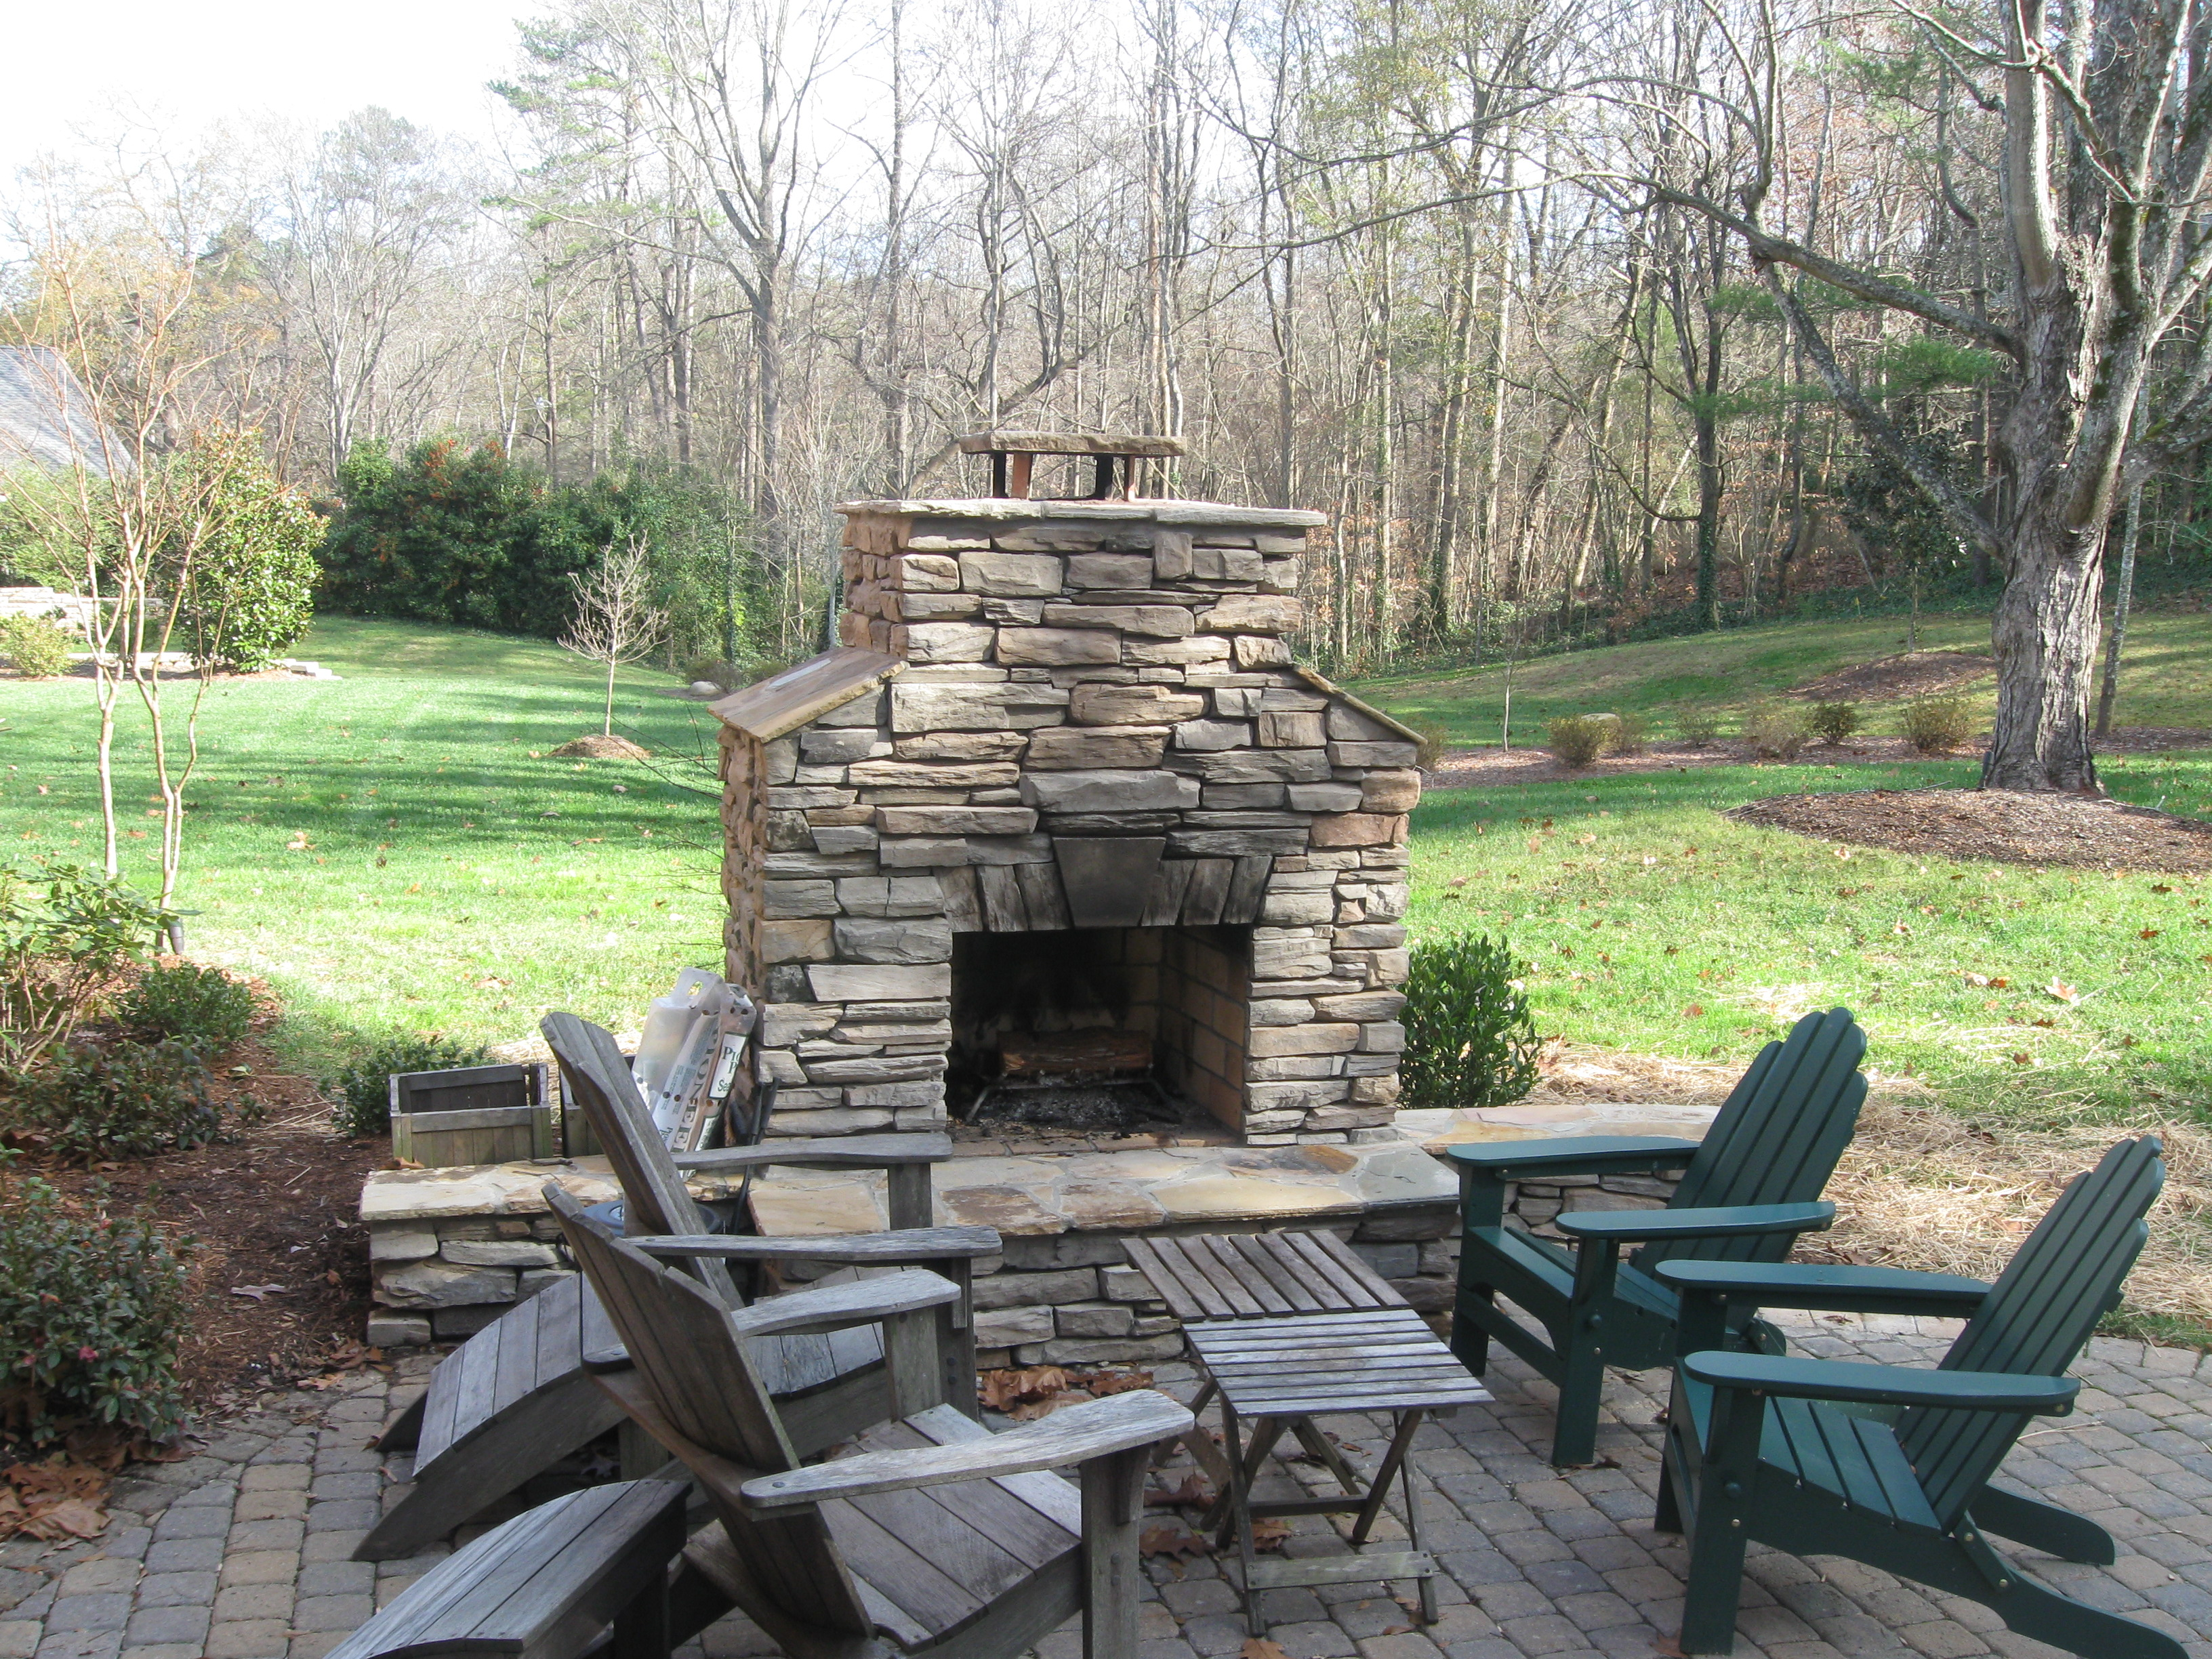 Brick Outdoor Fireplace In Birmingham | Fireplaces | Pinterest | Bricks,  Fireplace Kits And Fireplace Outdoor